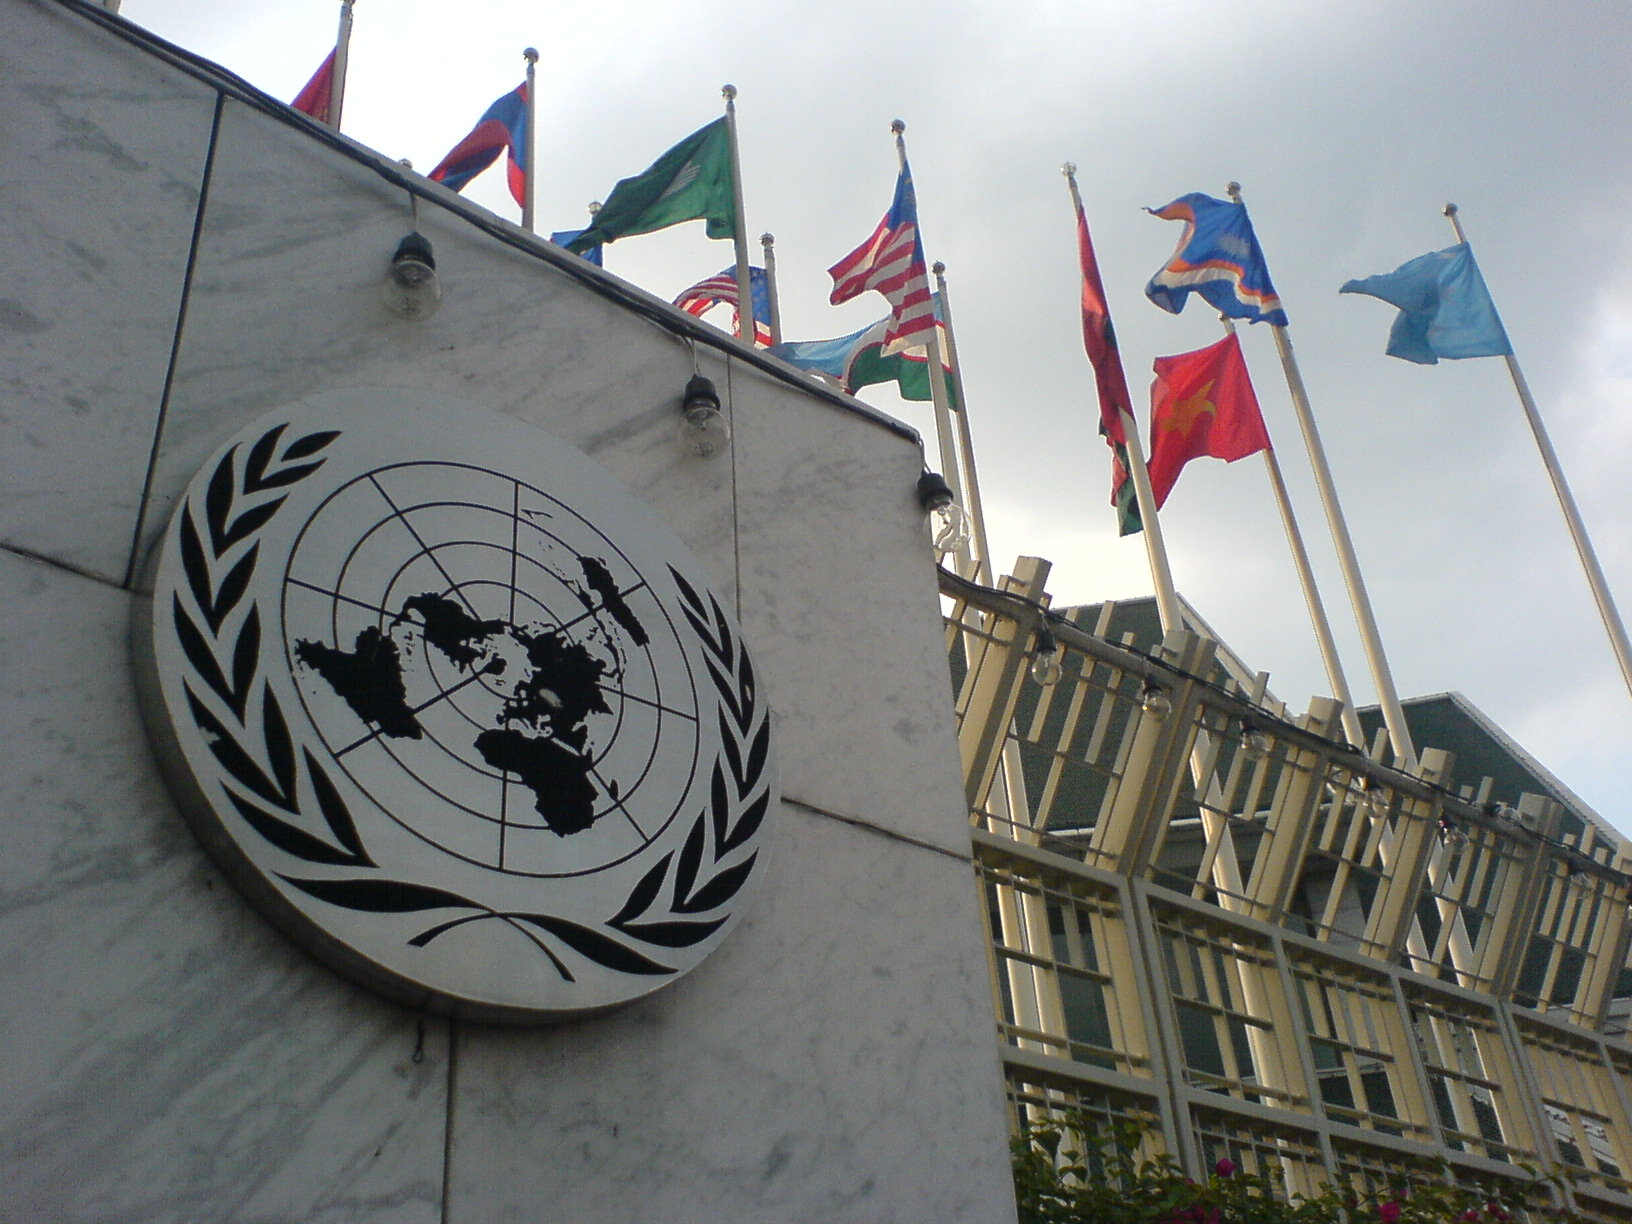 The U.N. Independent Expert calls all generations to protect rights of ageing society